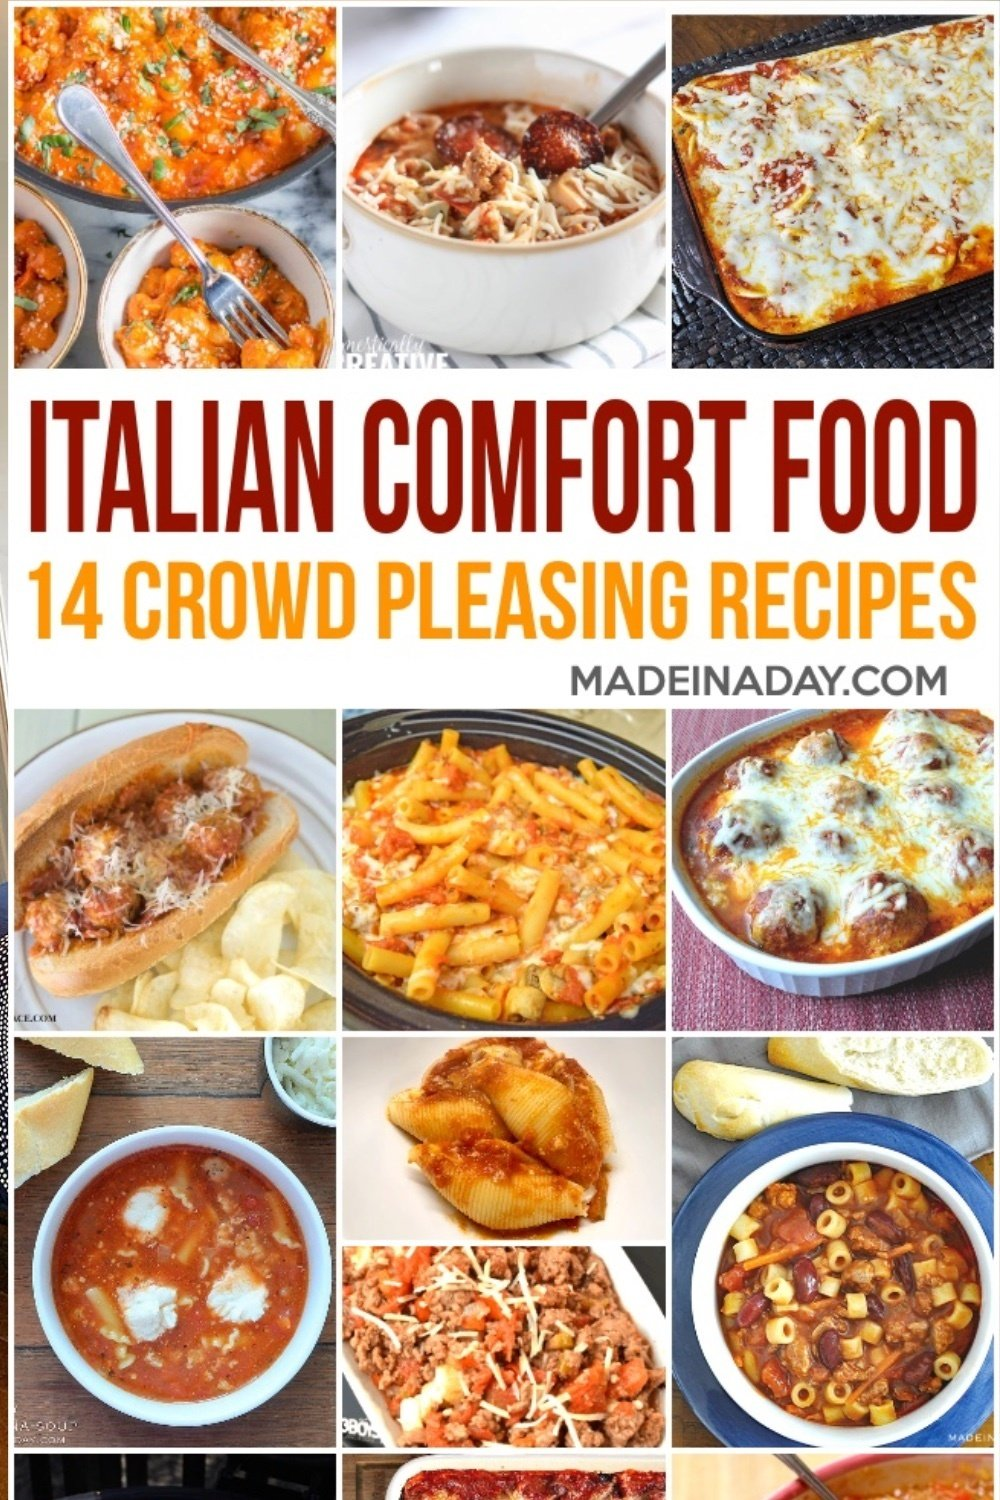 14 Crowd Pleasing Italian Comfort Food Recipes 14